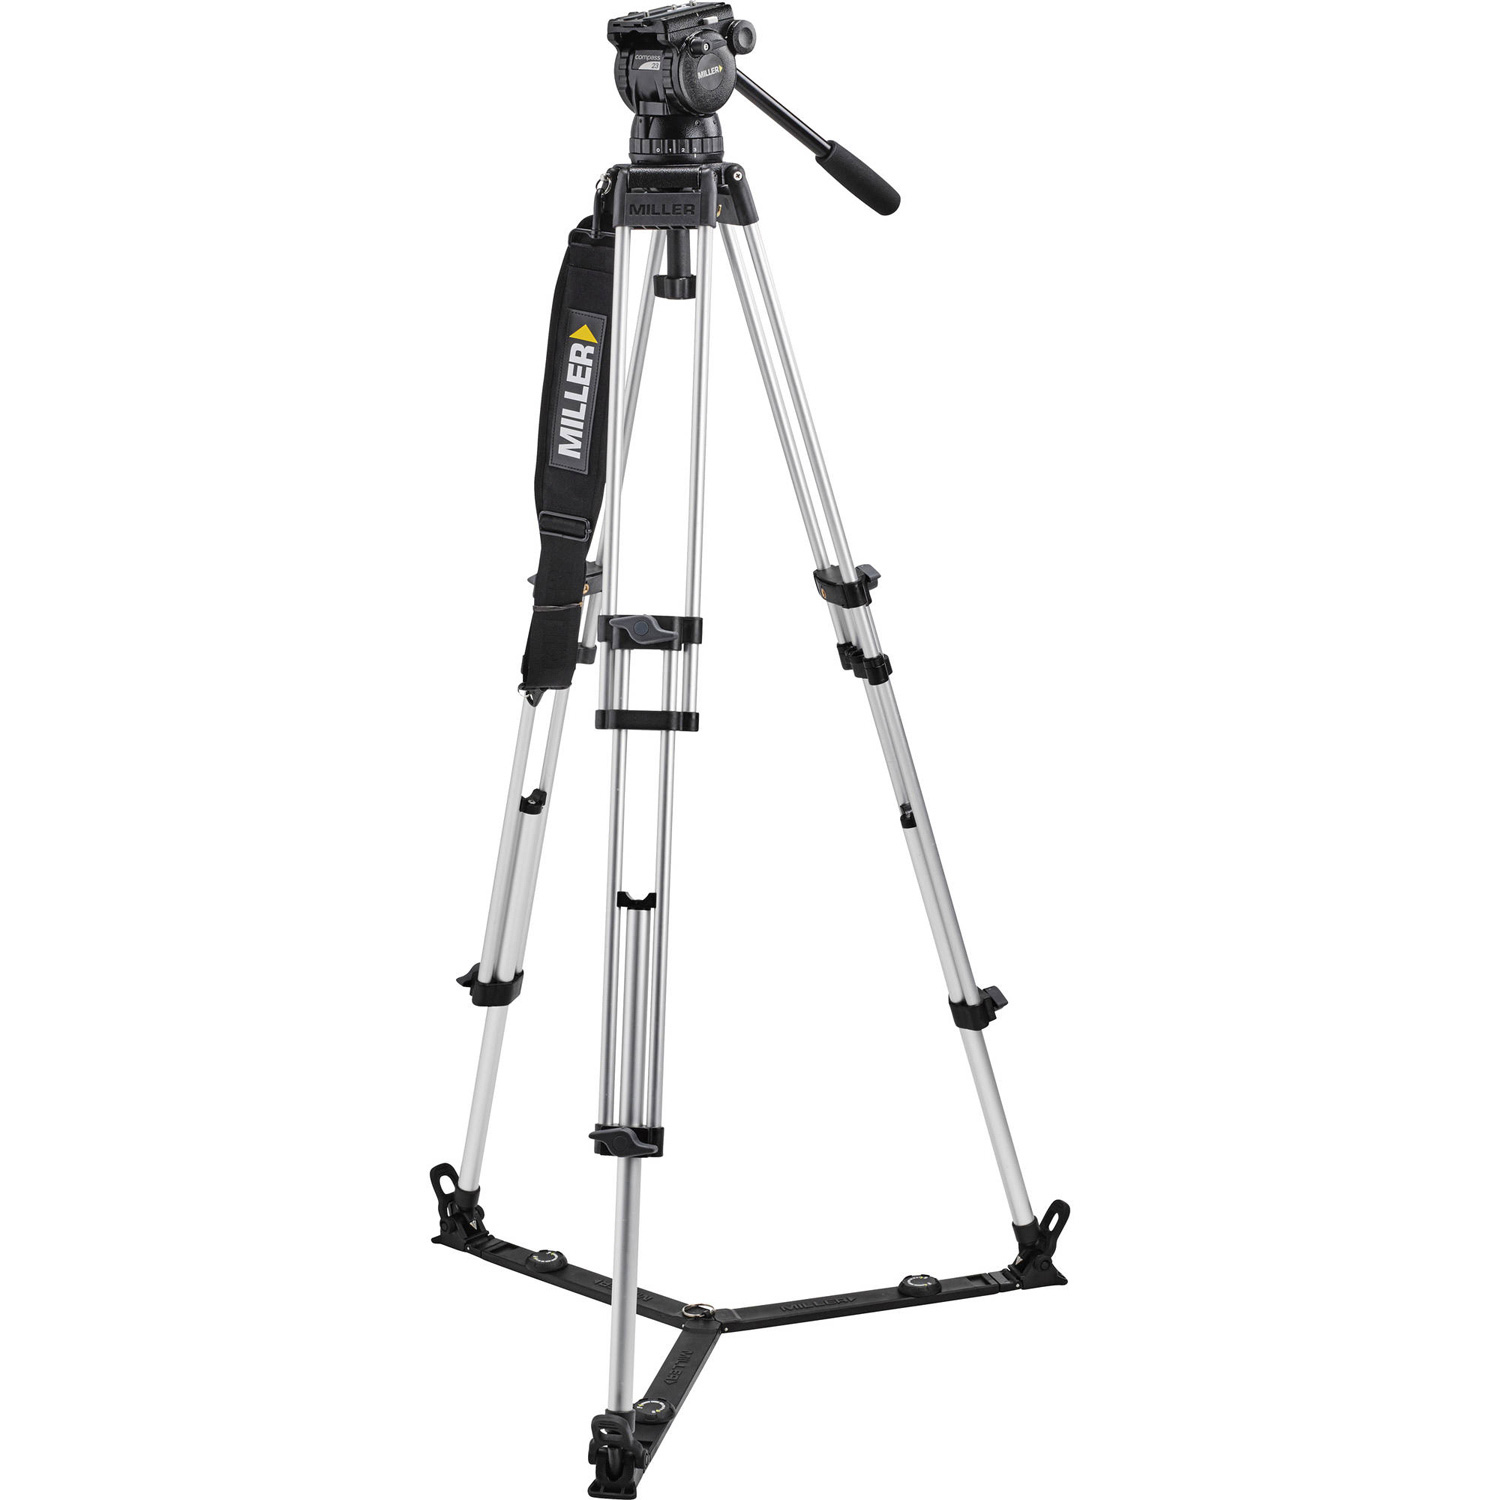 Miller 1862 Compass 23 2-Stage Alloy System with Ground